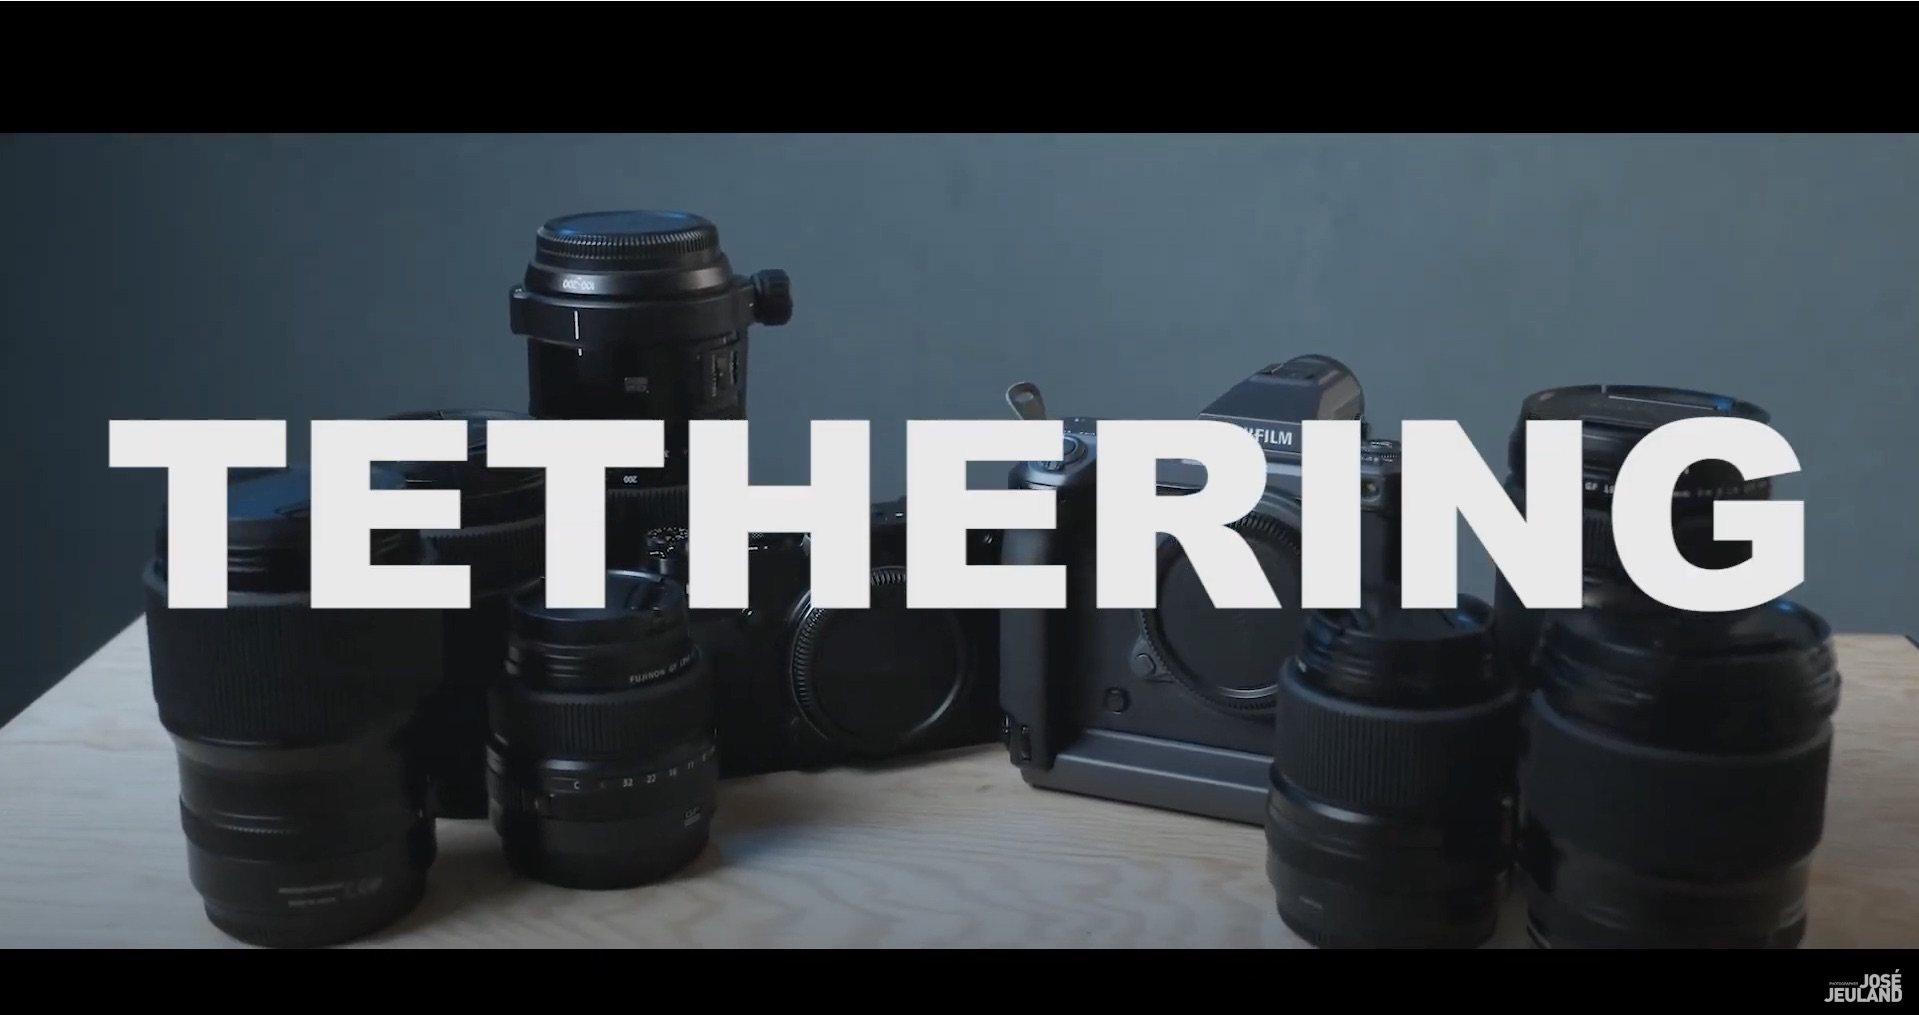 Tethered Shooting – Video